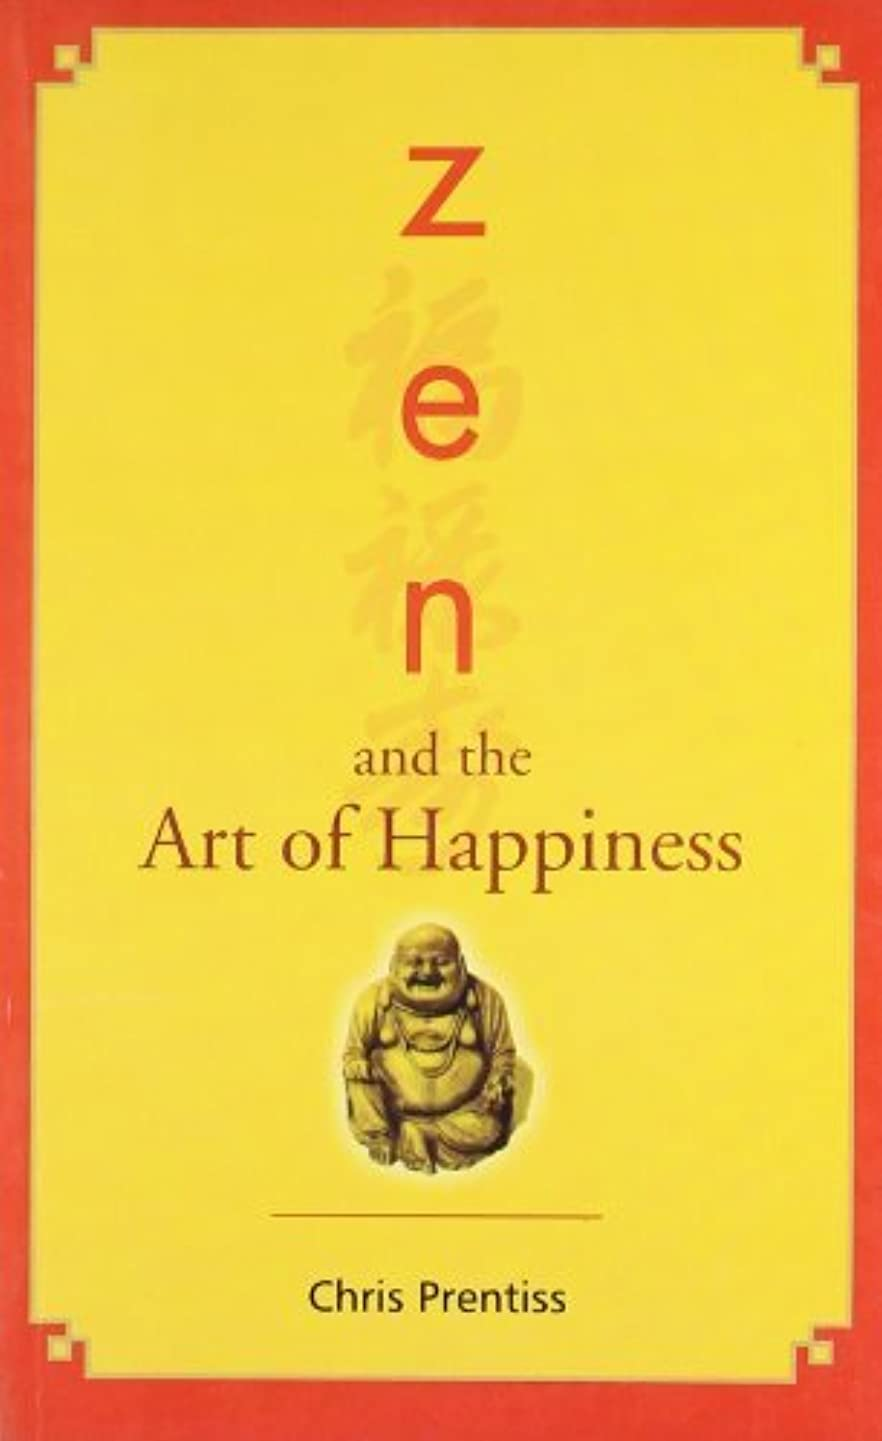 By Chris Prentiss Zen and the Art of Happiness